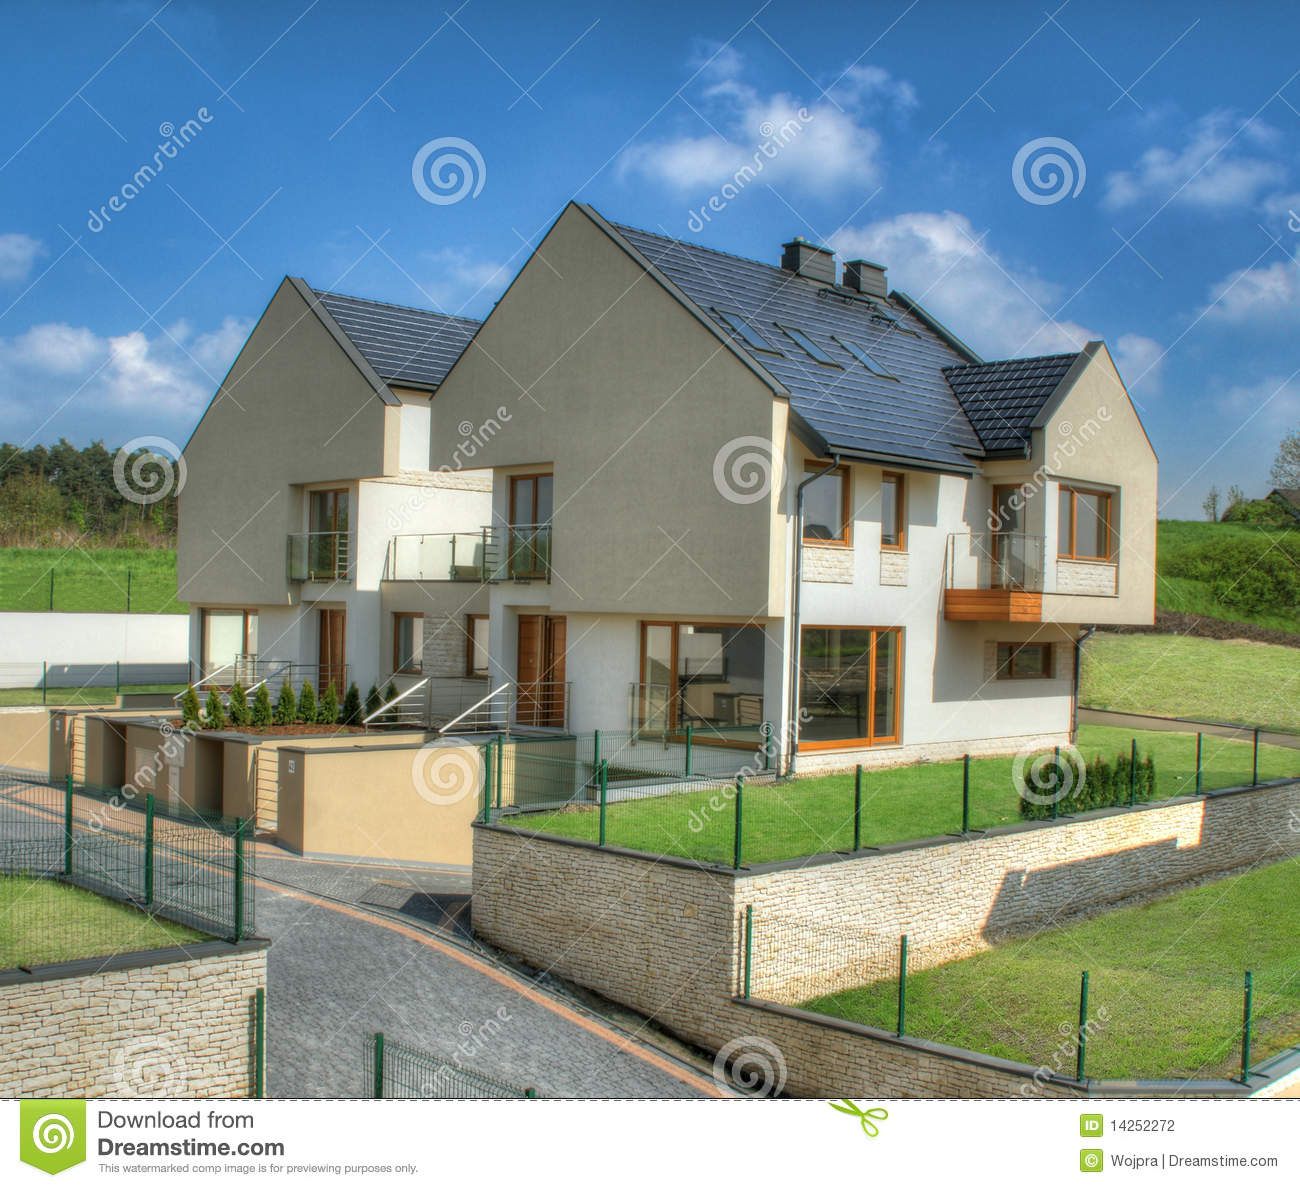 Semi Detached House Stock Photography Image 14252272